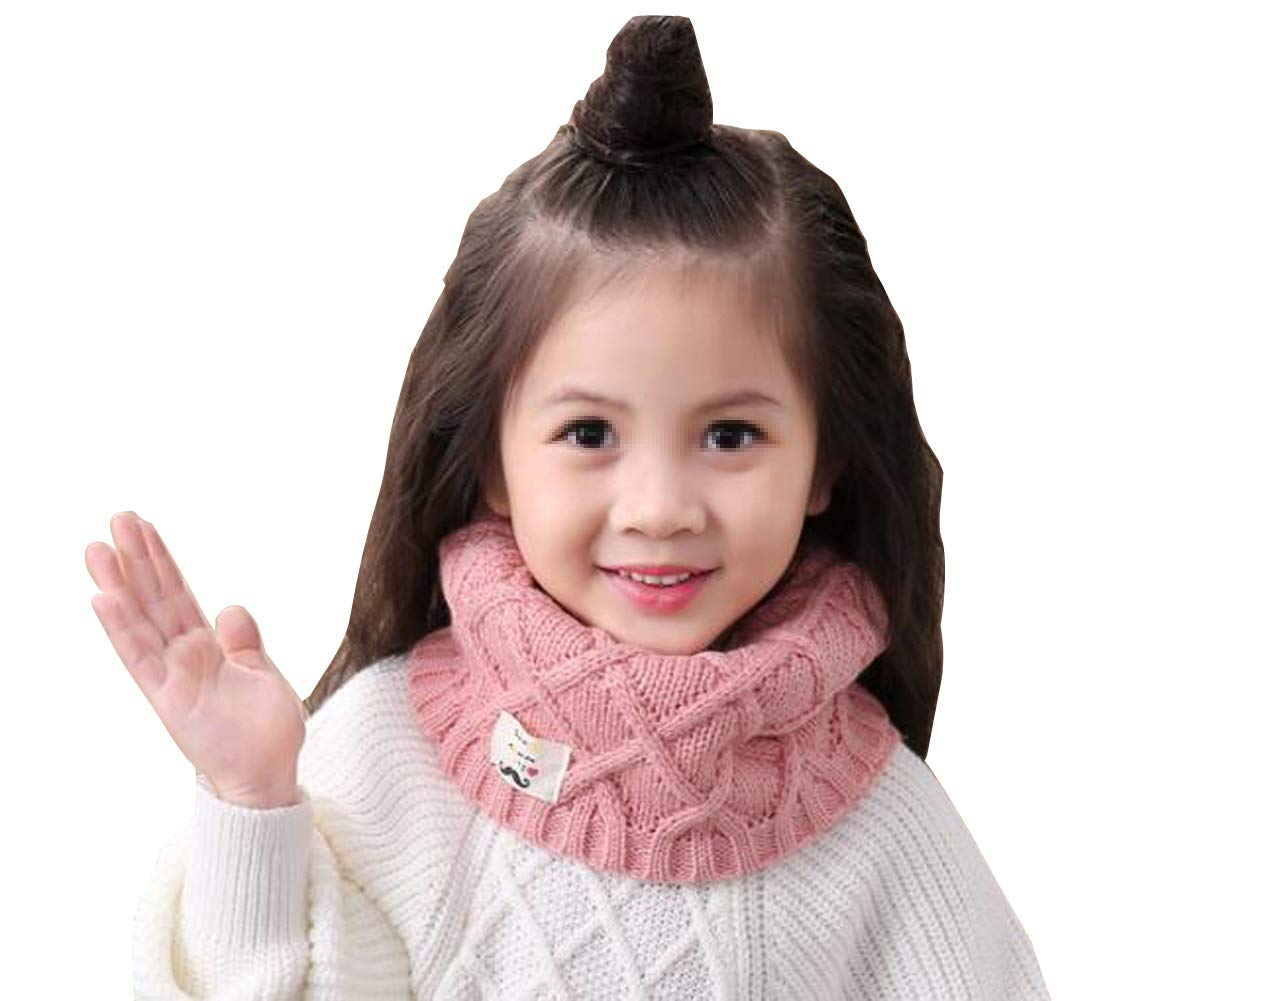 1PC Soft Unisex Baby Kids Fashion Solid Color Soft Thick Knitted Scarf Winter Warm Infinity Scarf Circle Loop Neckerchief Neck Warmer Wrap Scarves (Grey) SYBL